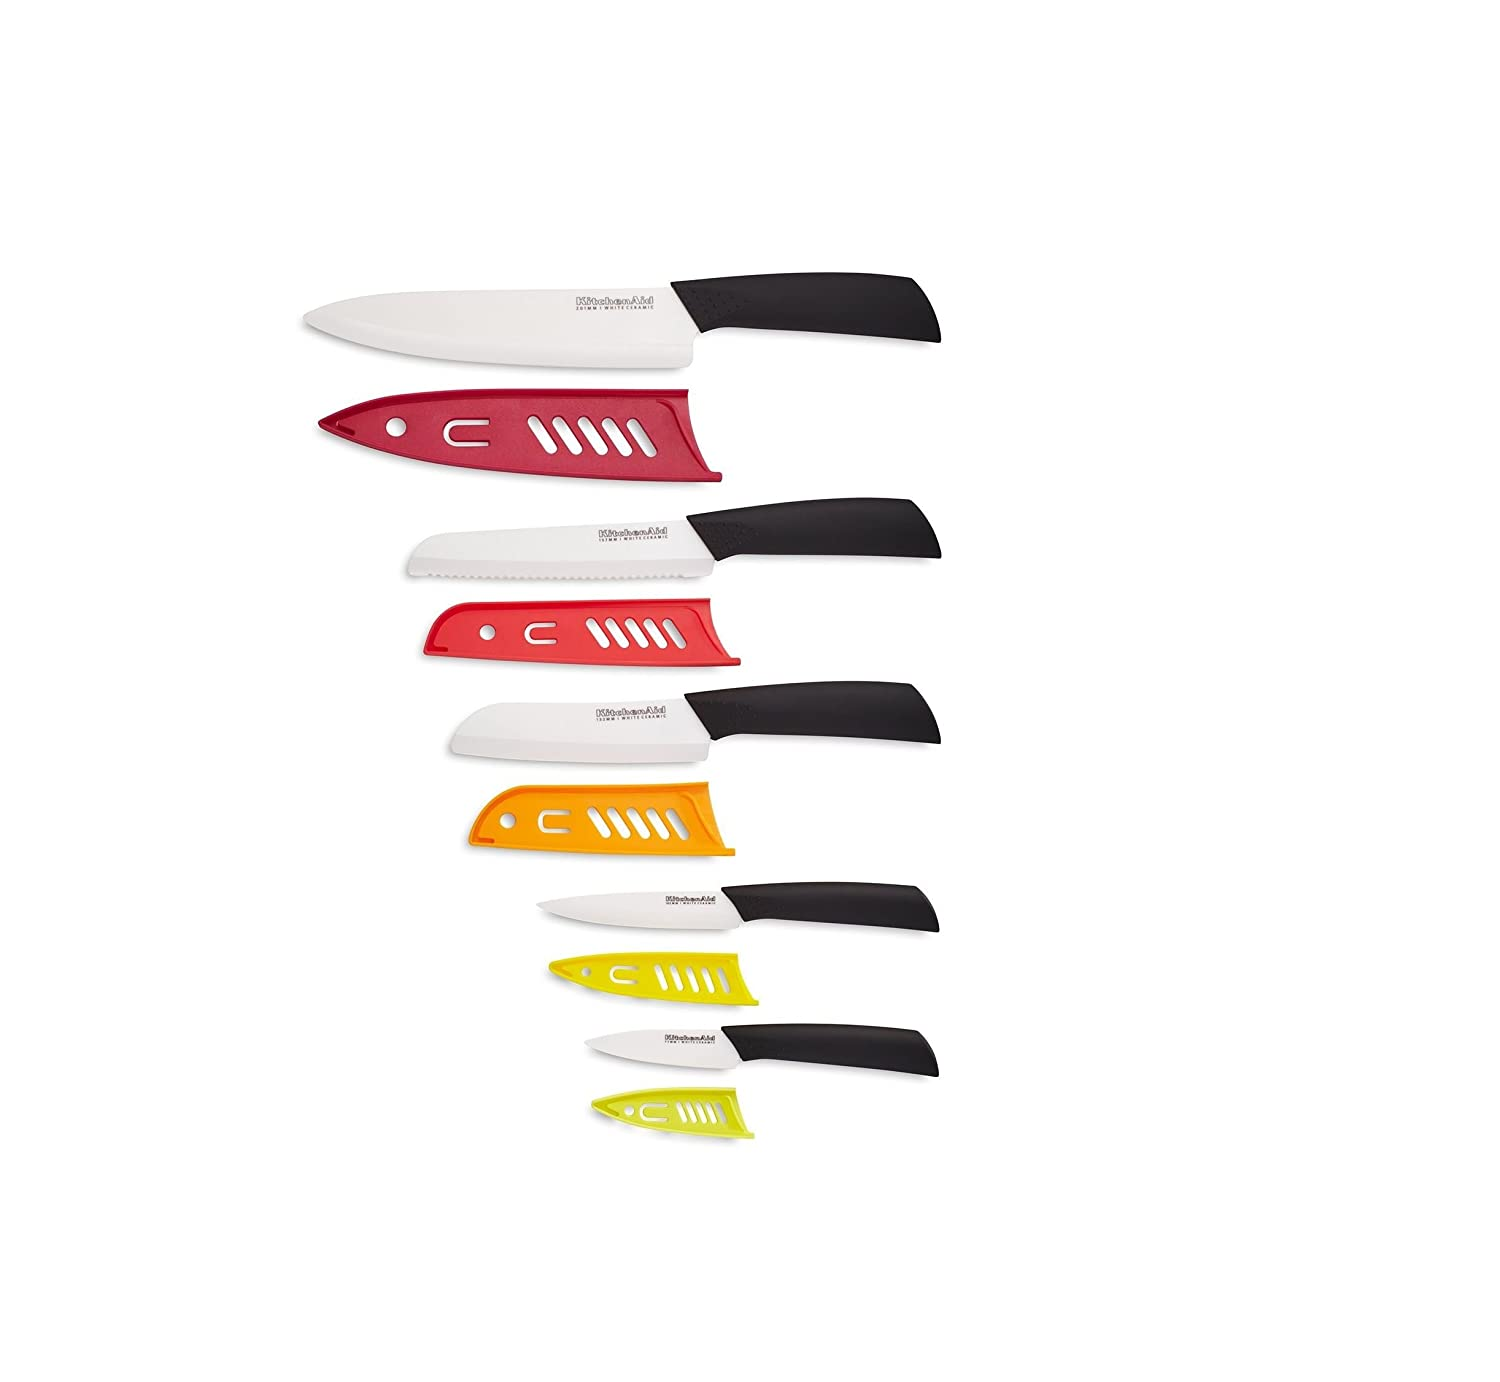 Ceramic and metal knives is the material they are made from ceramic - Ceramic And Metal Knives Is The Material They Are Made From Ceramic 41